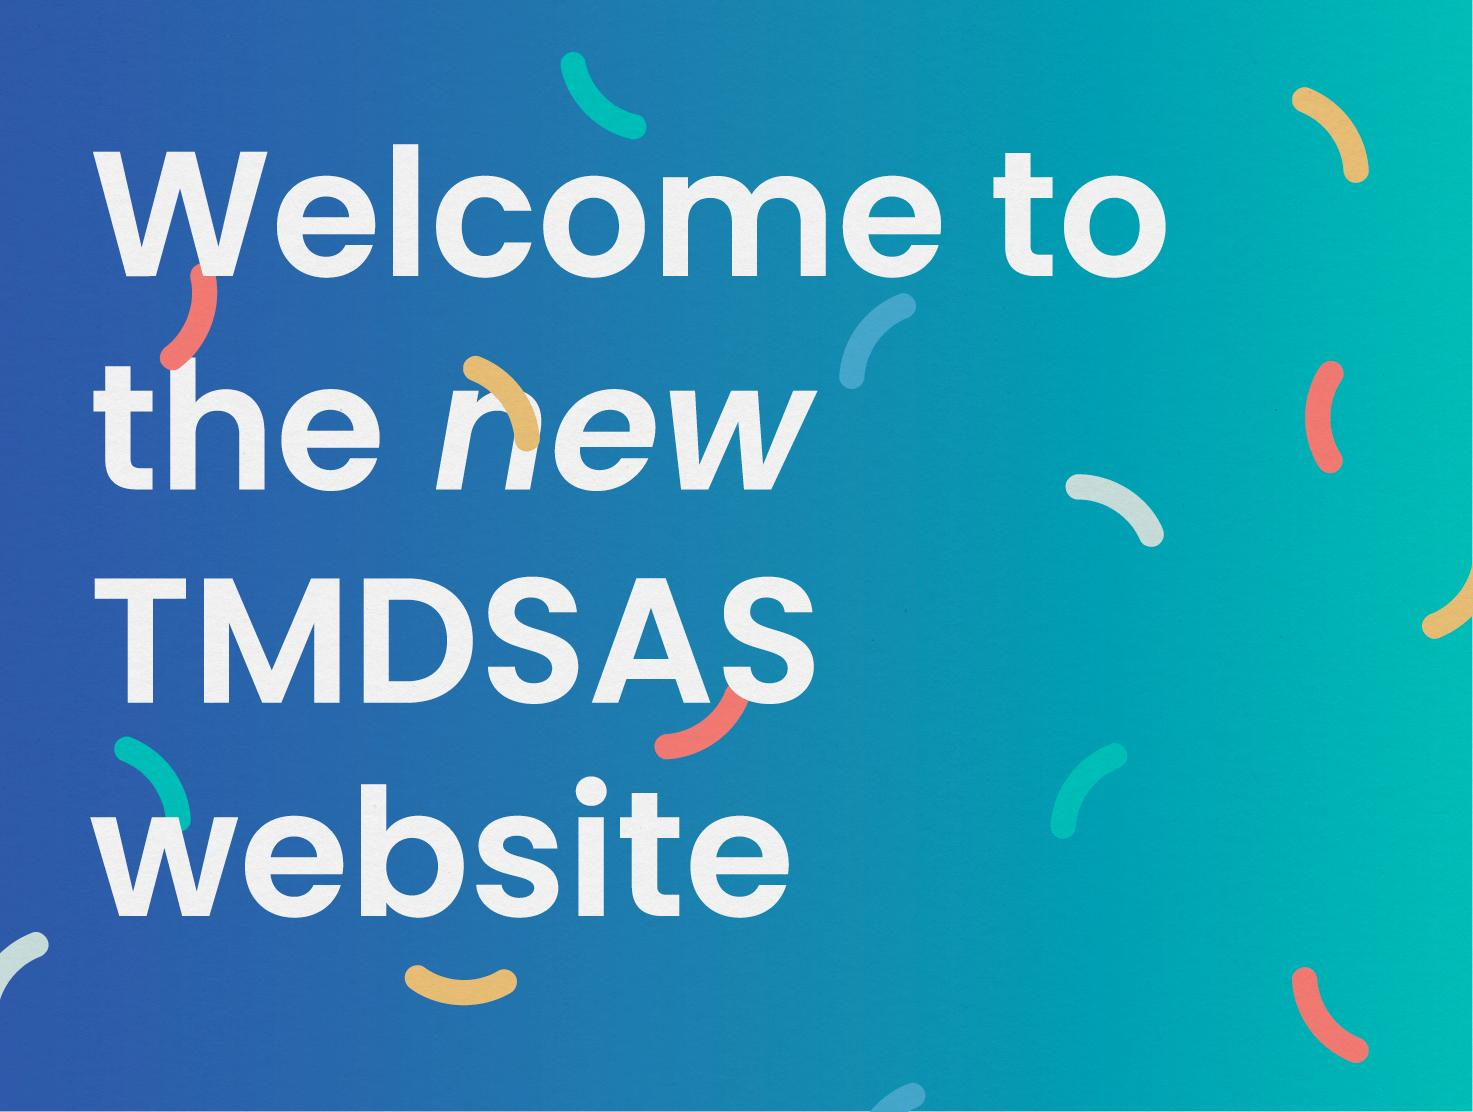 New TMDSAS welcome